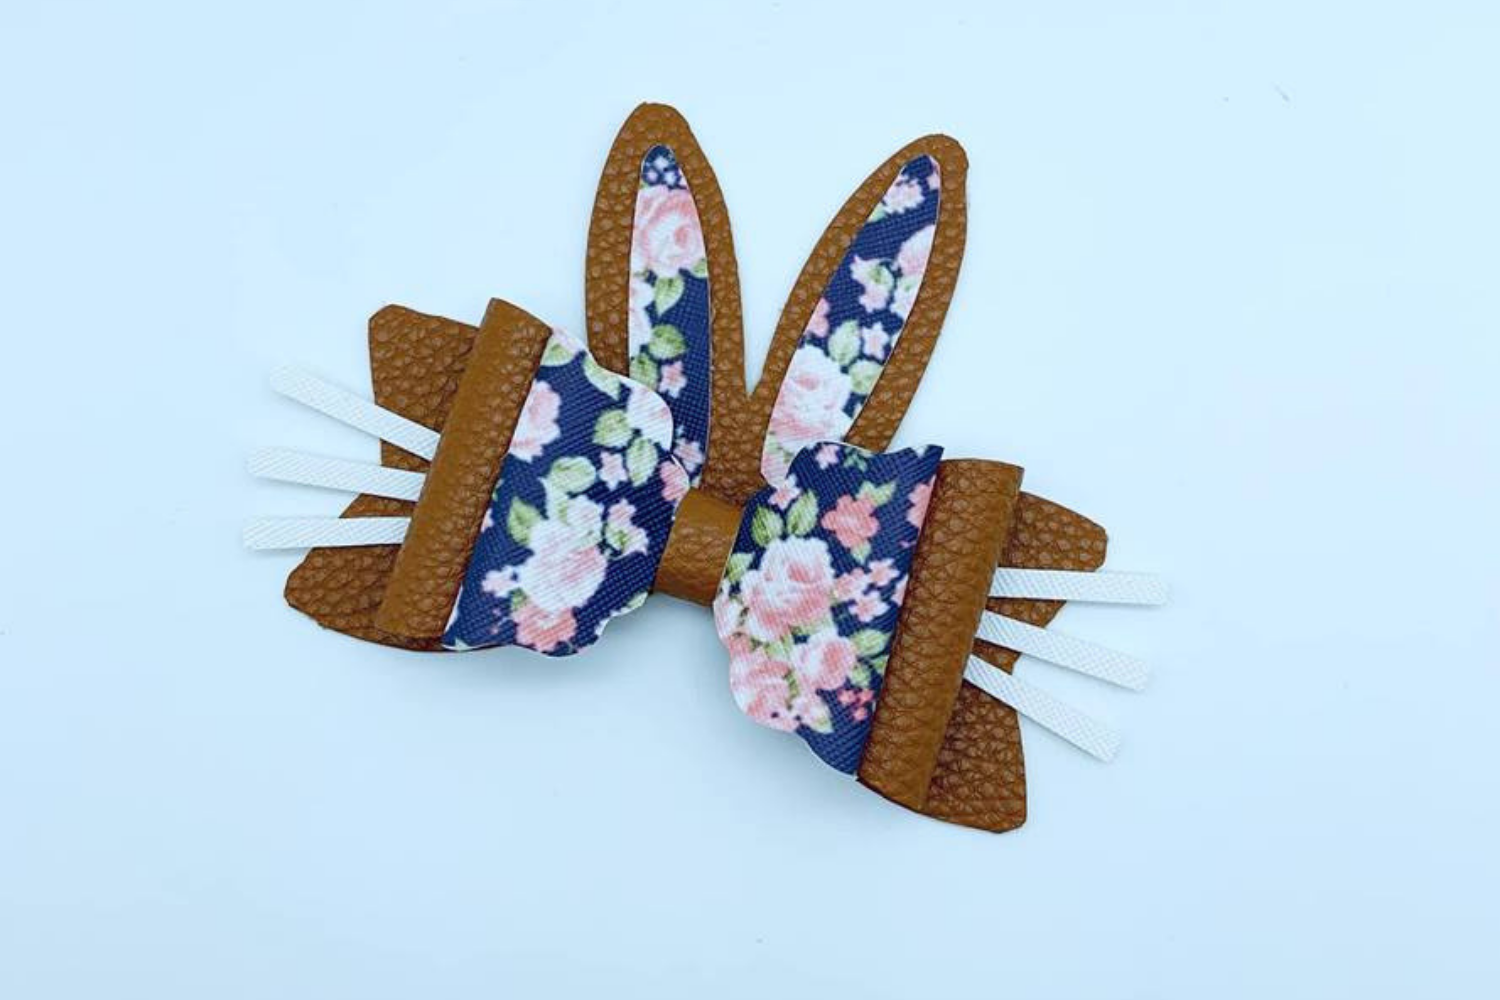 Hair bow - Faux leather diy project Bunny ear hair bows - example image 4